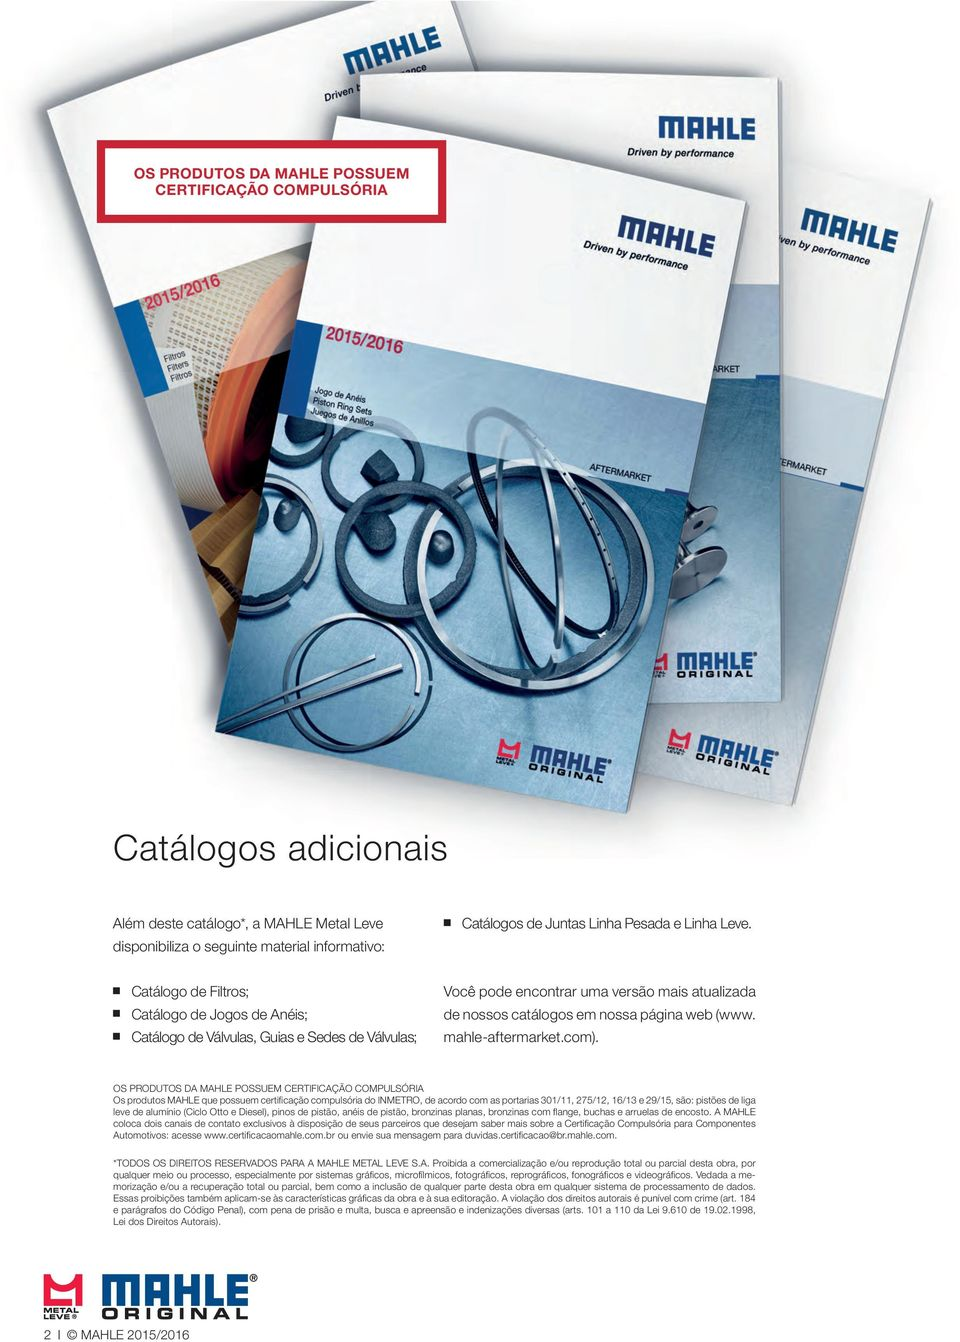 mahle-aftermarket.com).